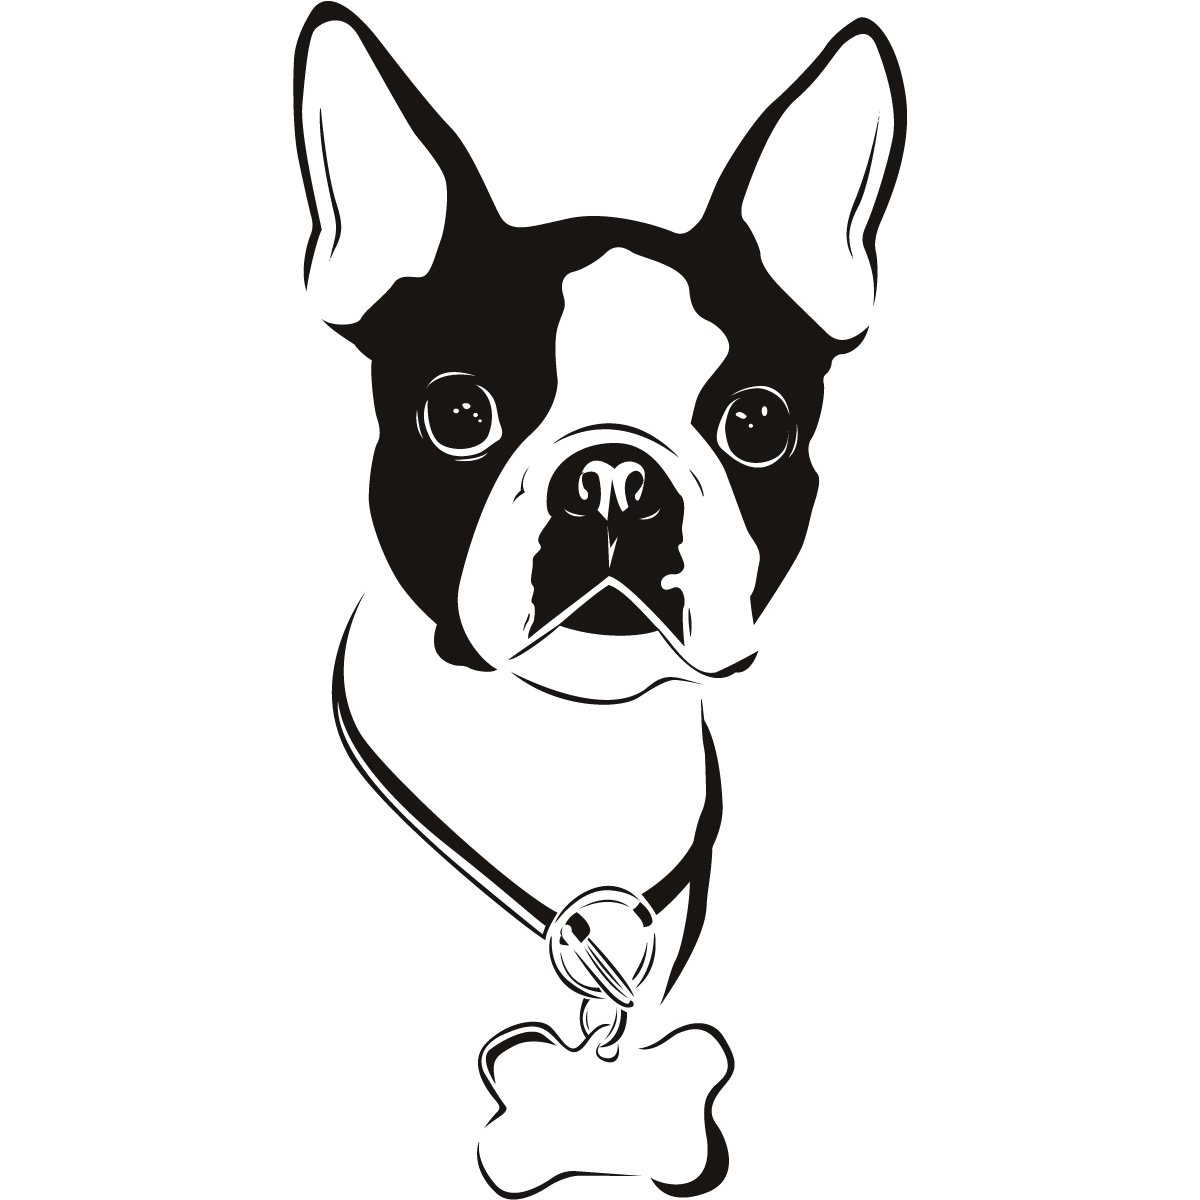 Boston Terrier clipart #18, Download drawings